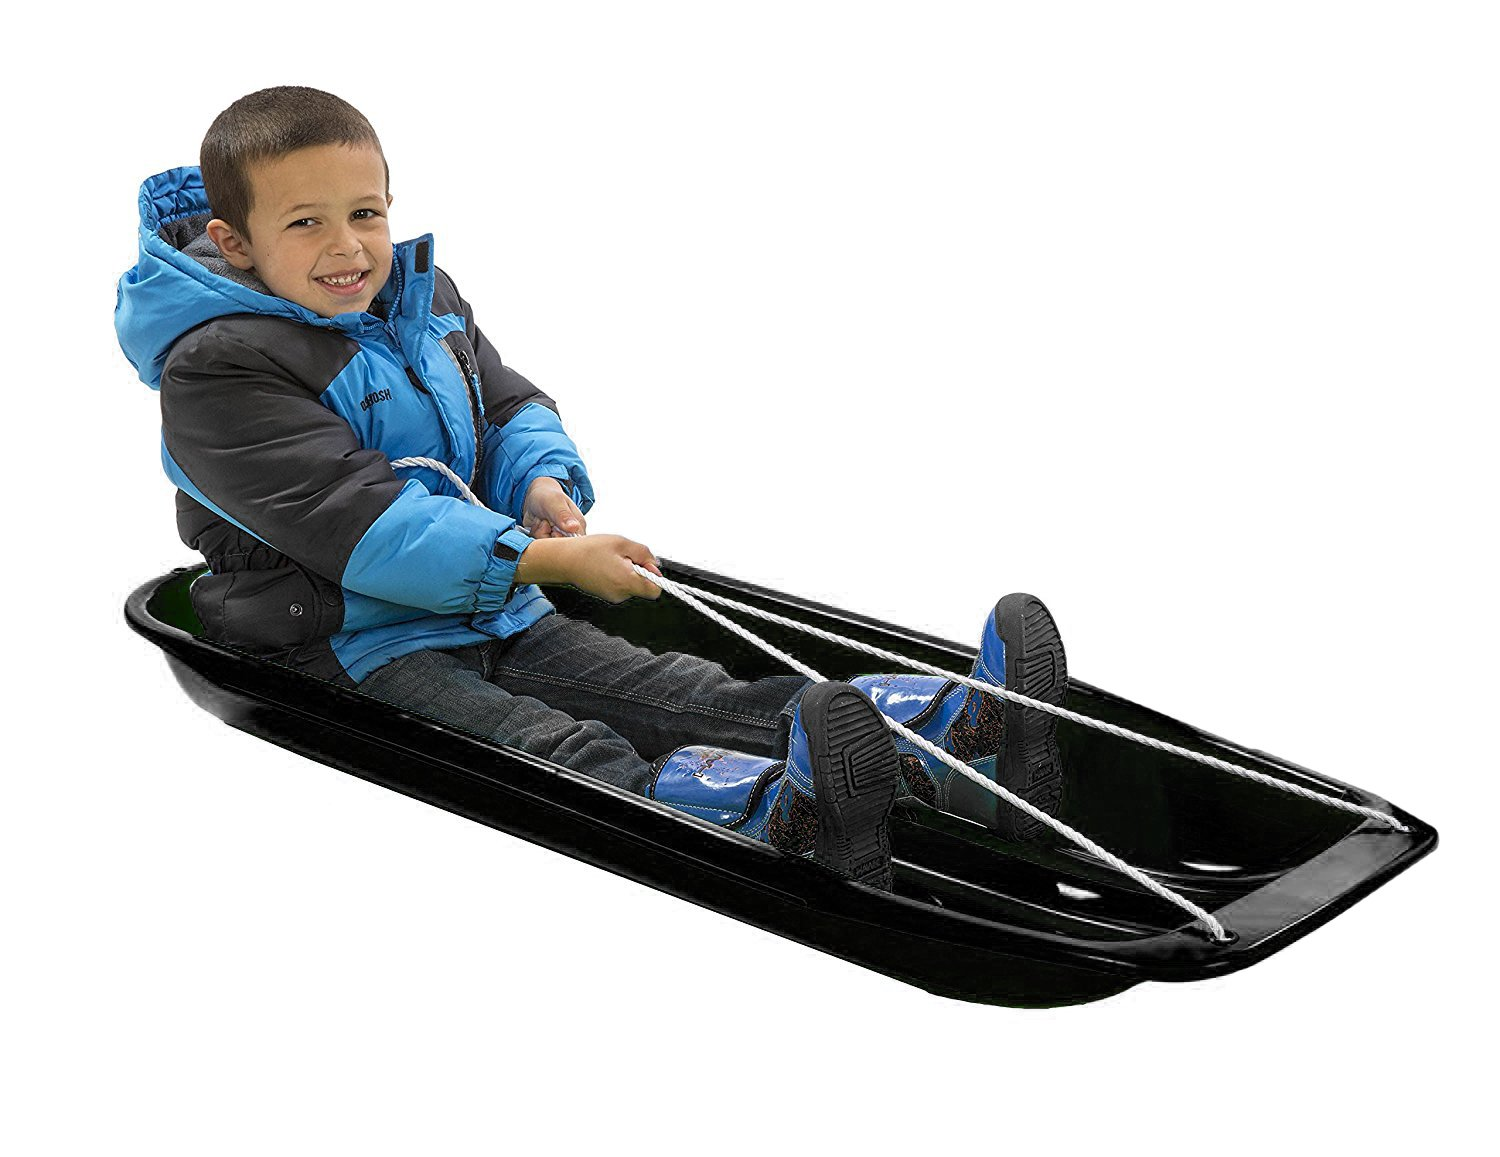 lucky bums snow kids toboggan sled black 48 sporting. Black Bedroom Furniture Sets. Home Design Ideas